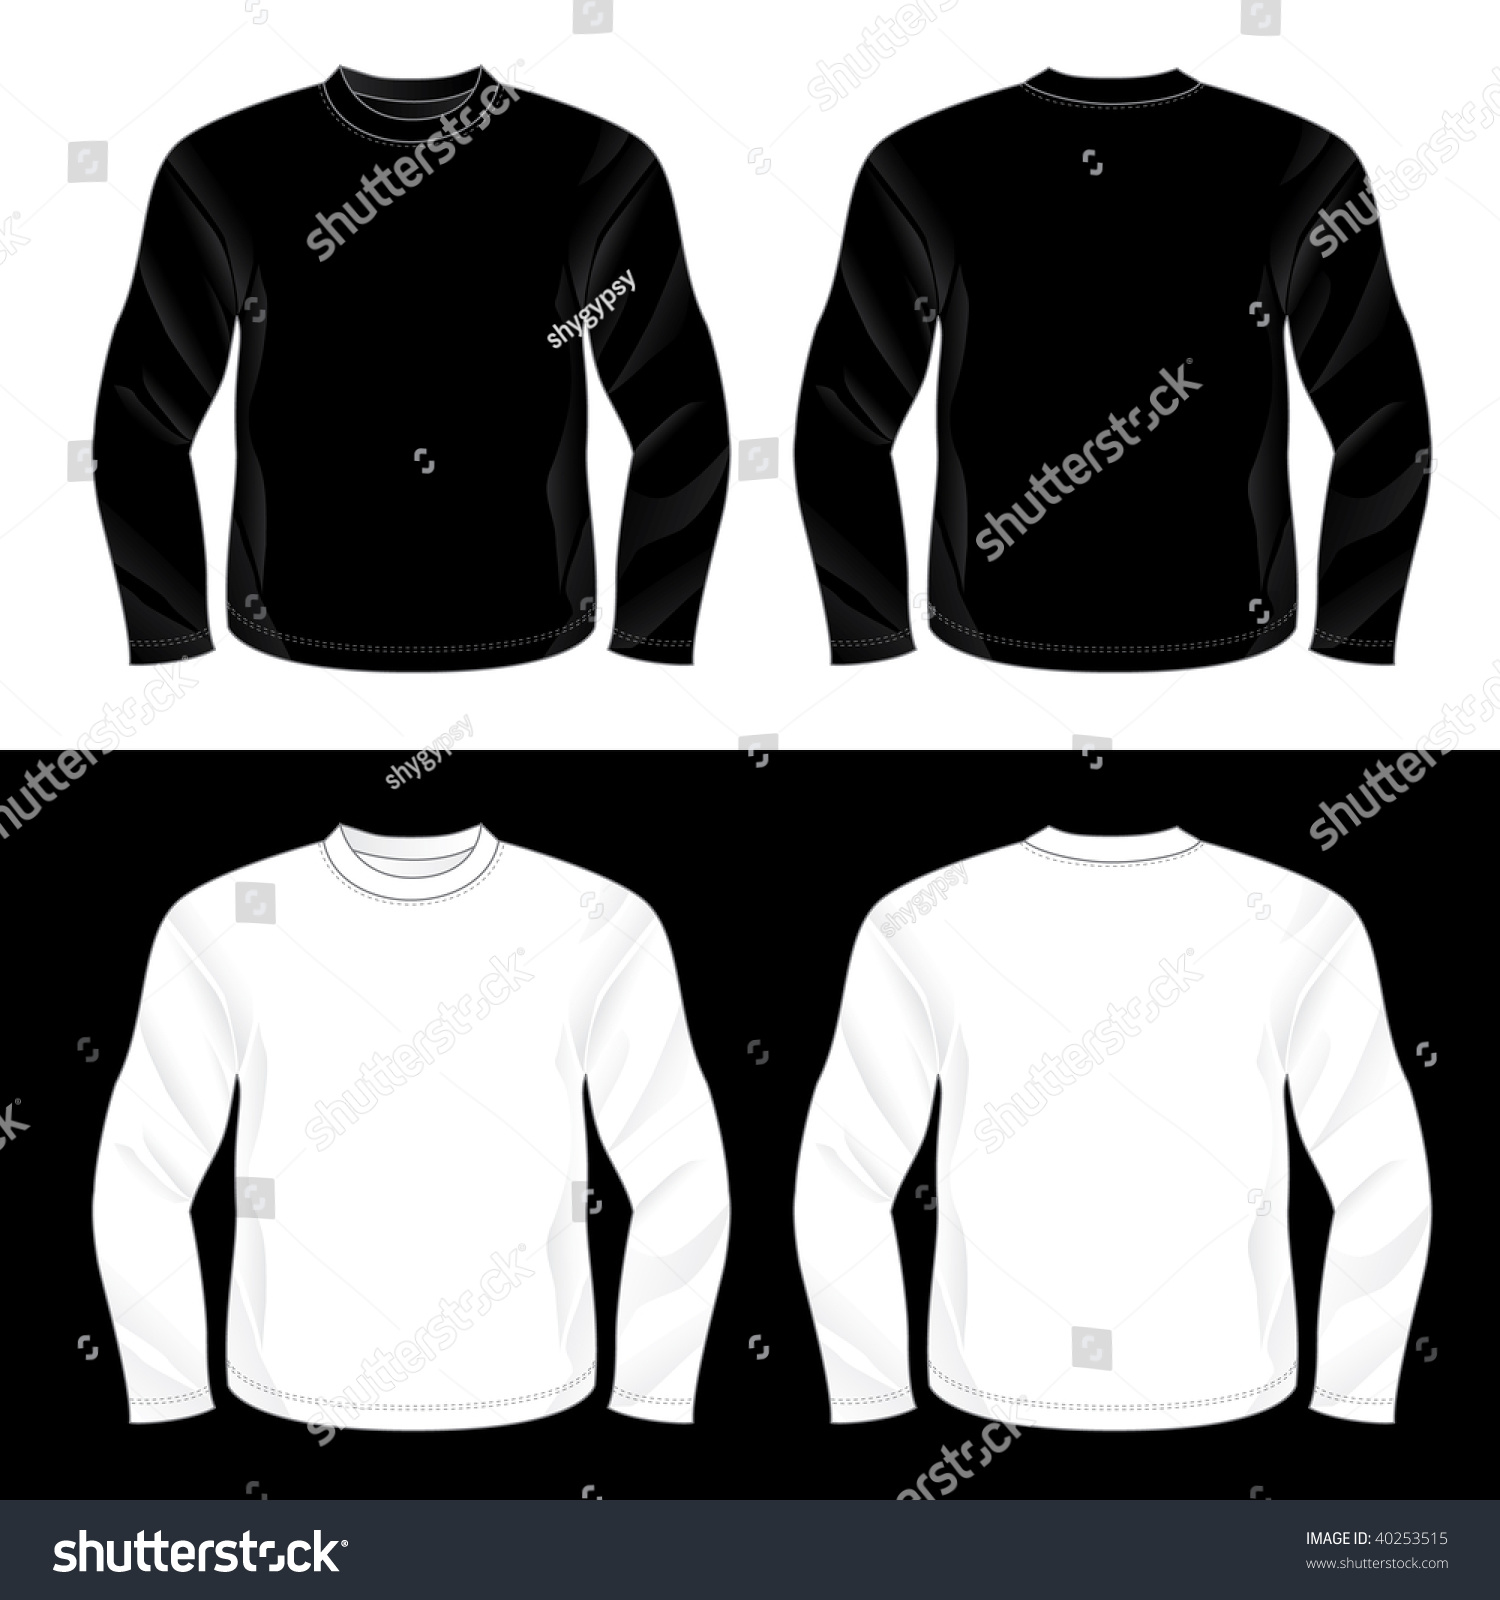 Blank black t shirt front and back - Black And White Realistic Blank Long Sleeve T Shirt Templates Front